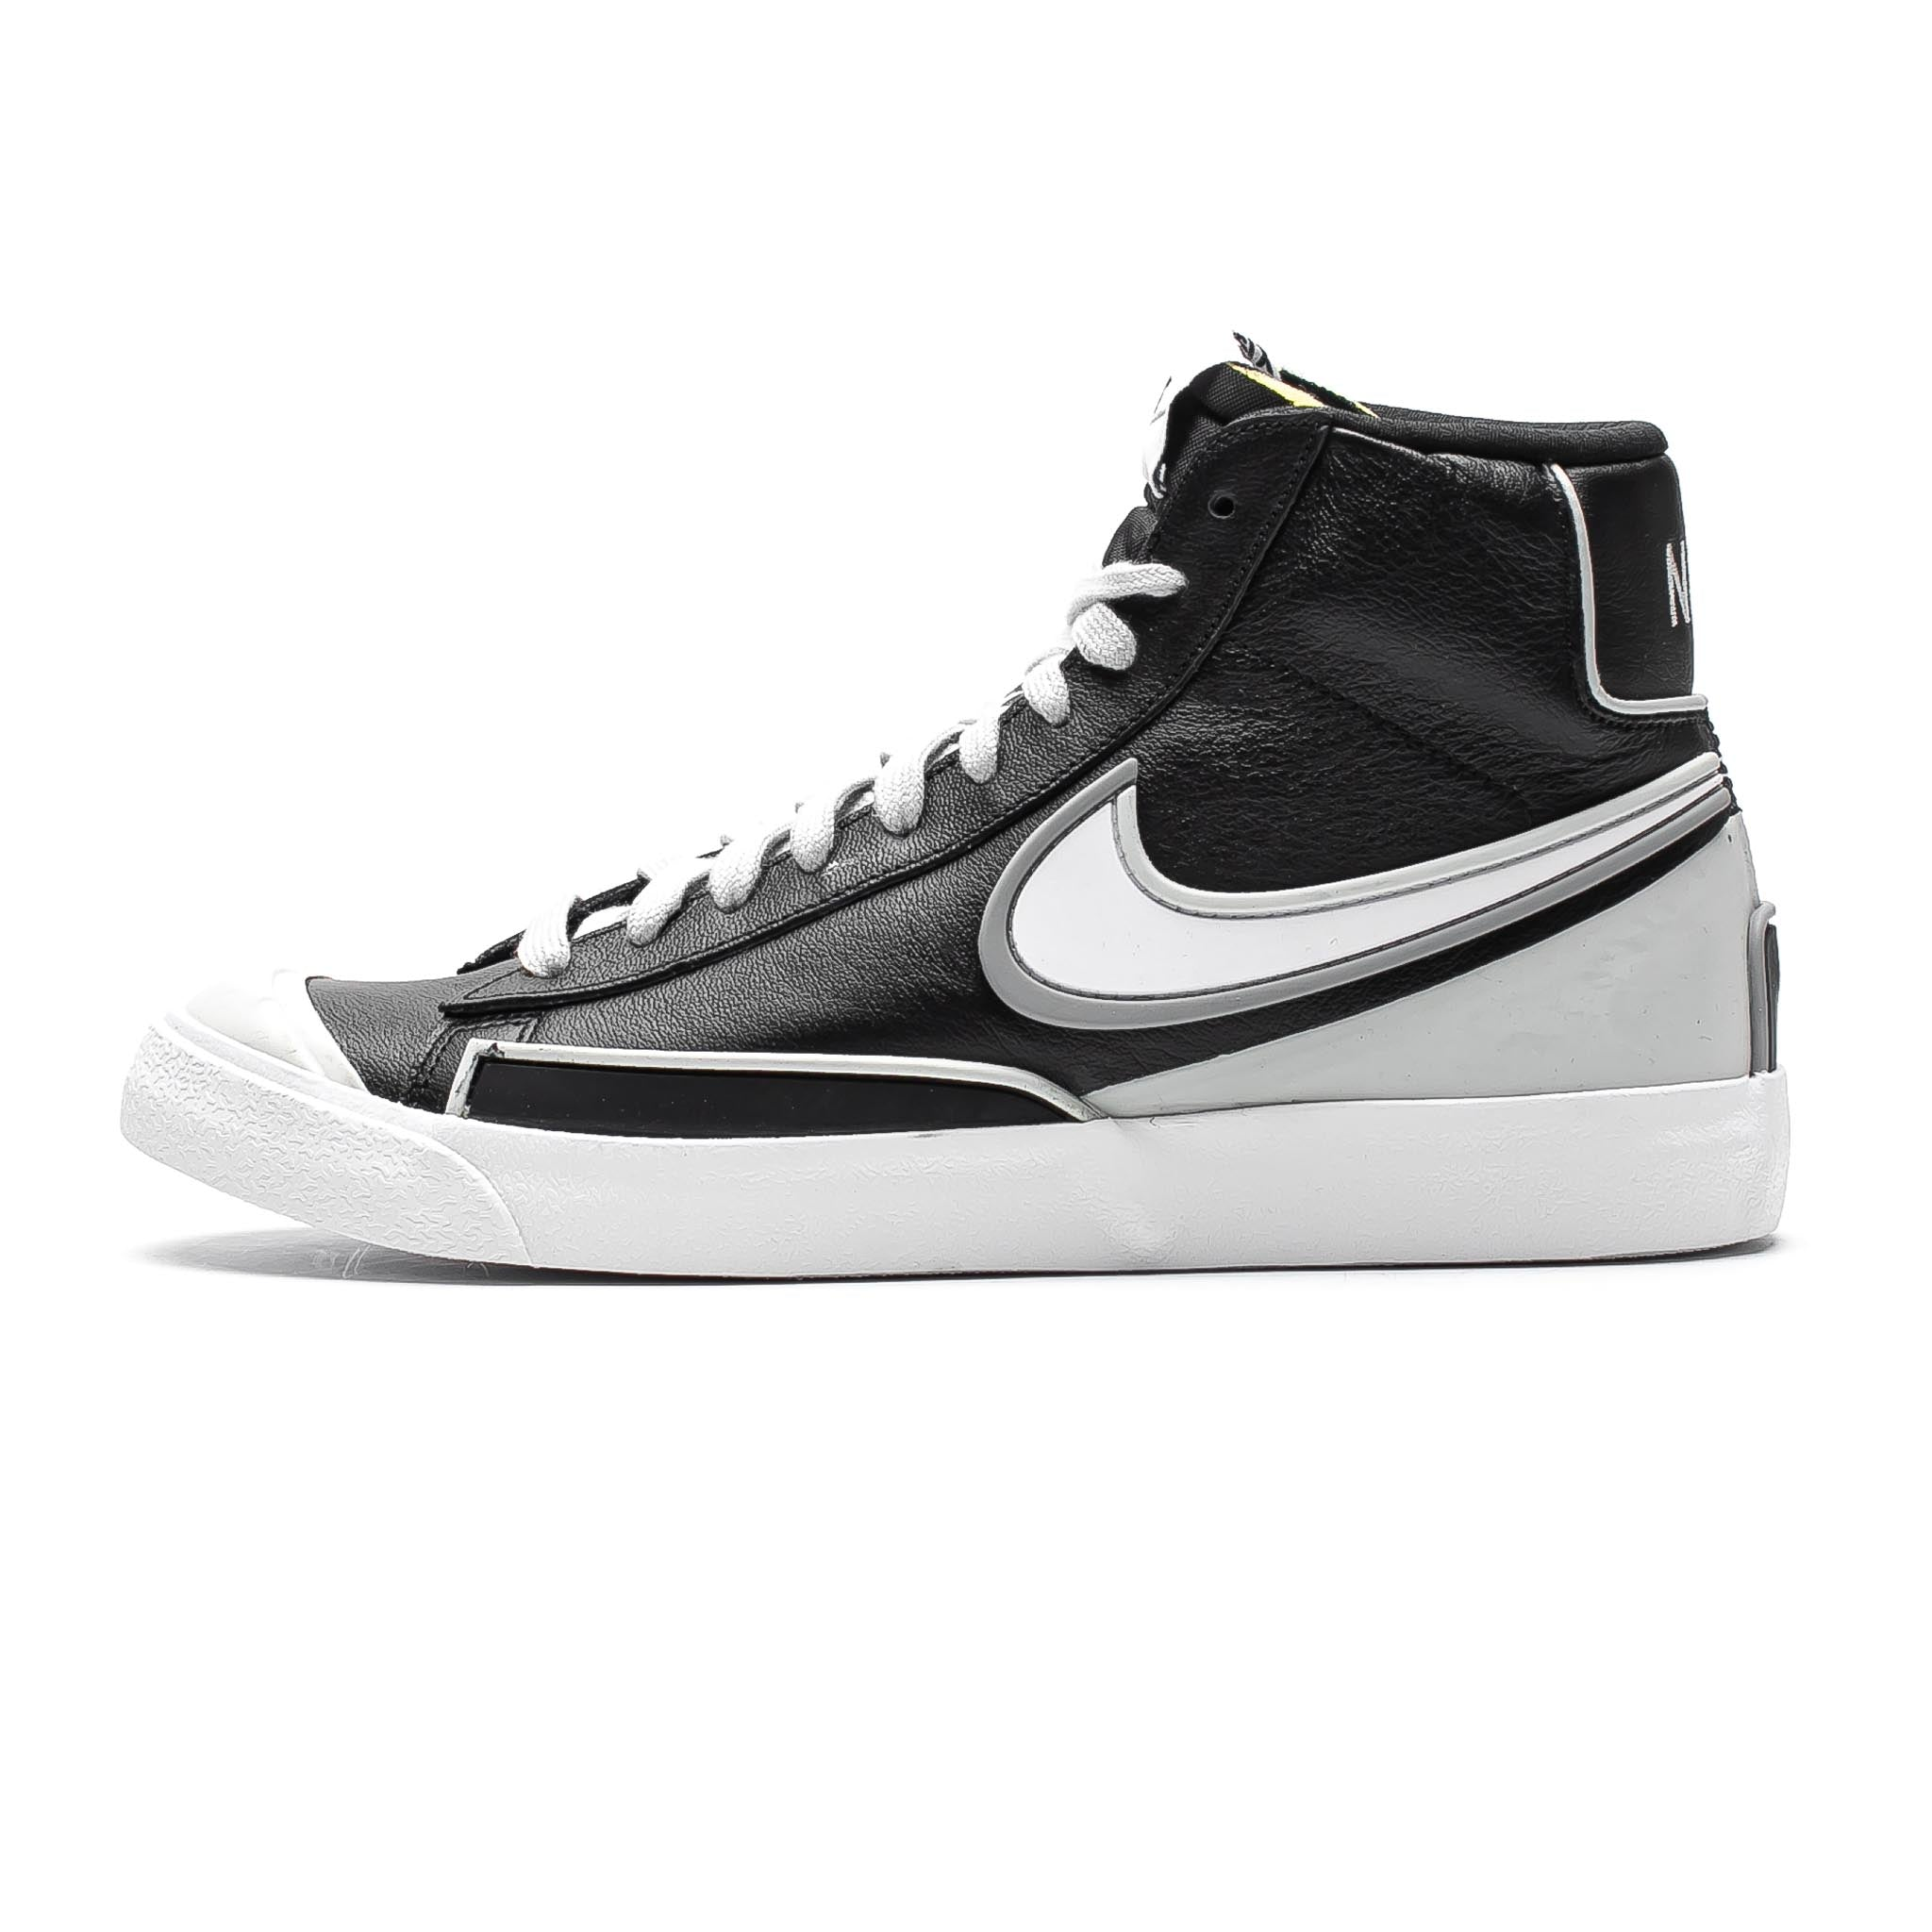 Nike Blazer Mid '77 Infinite 'Black/White'